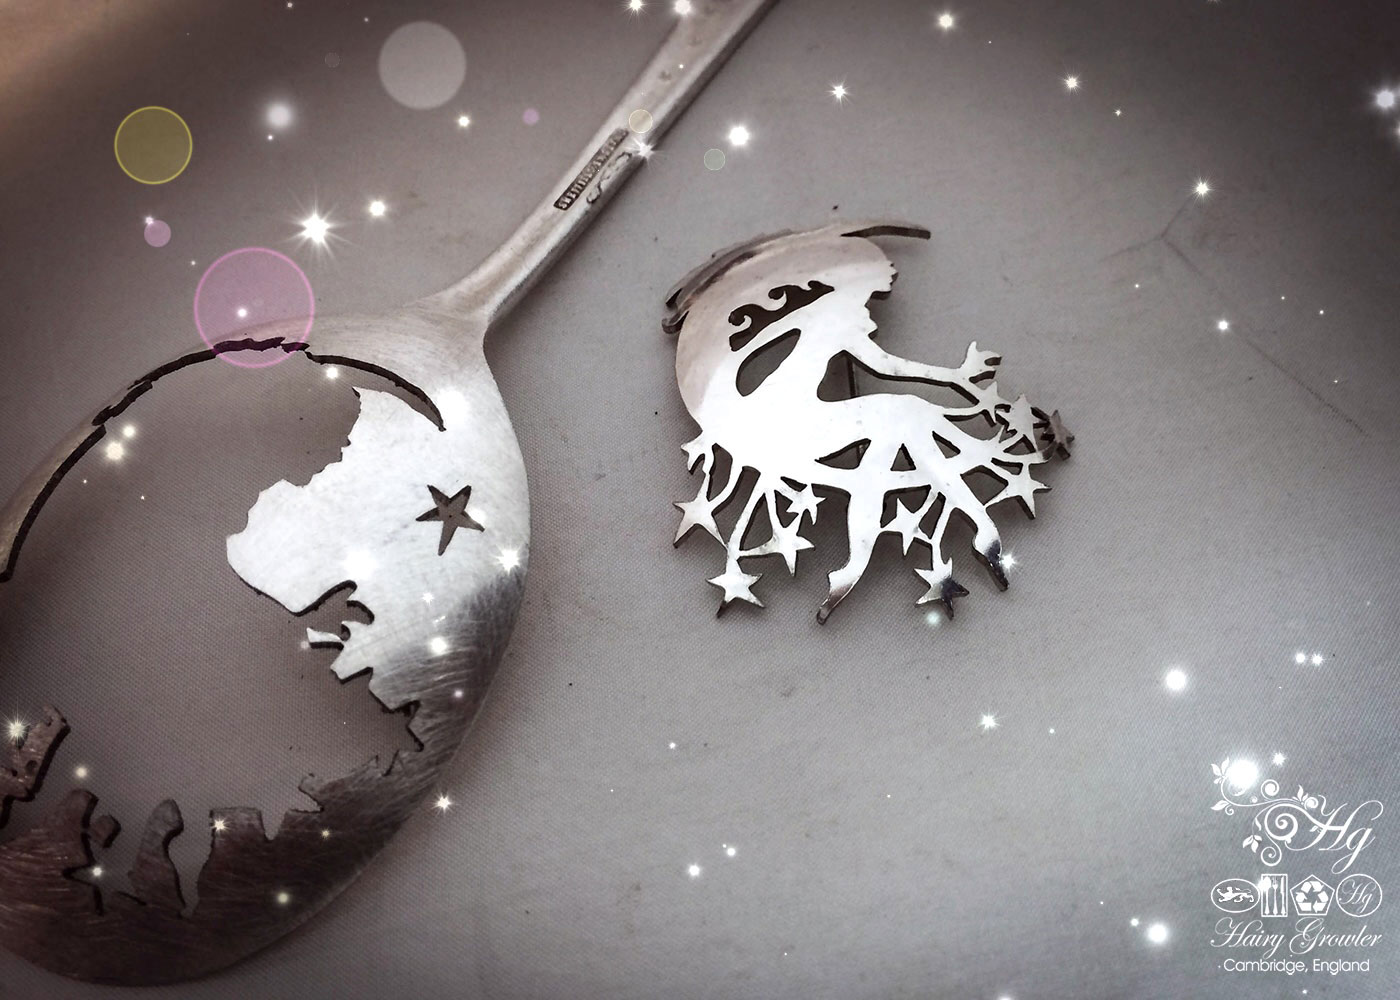 handmade and repurposed spoon star and moon girl brooch